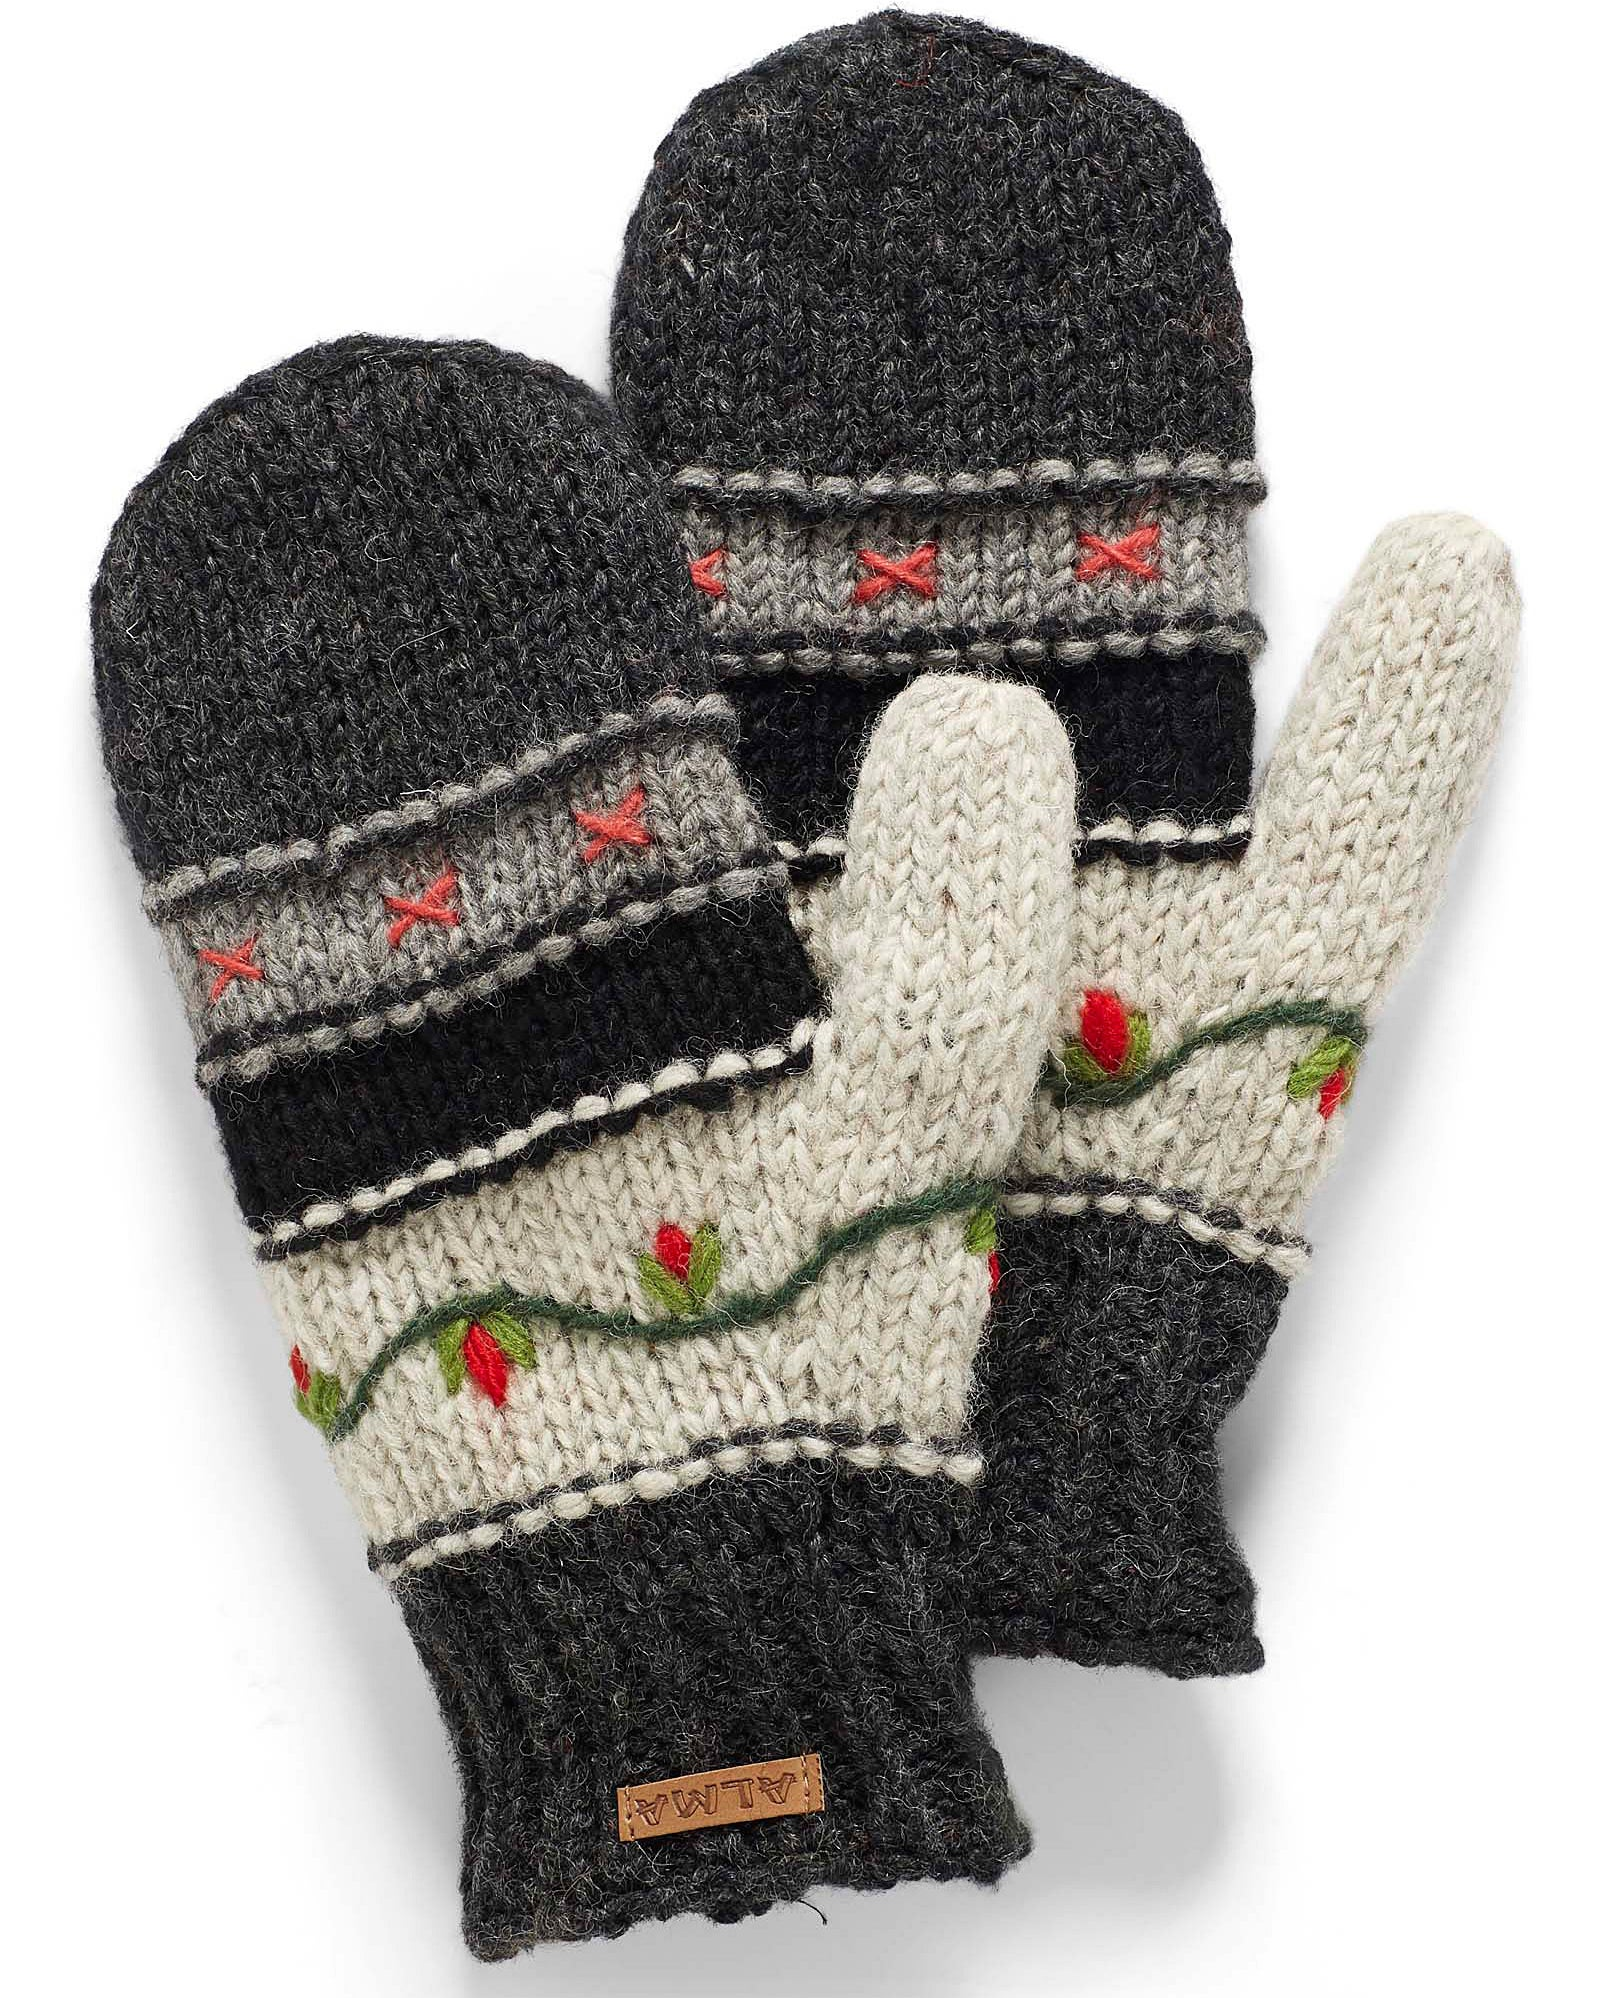 A pair of knit mittens with floral embroidery